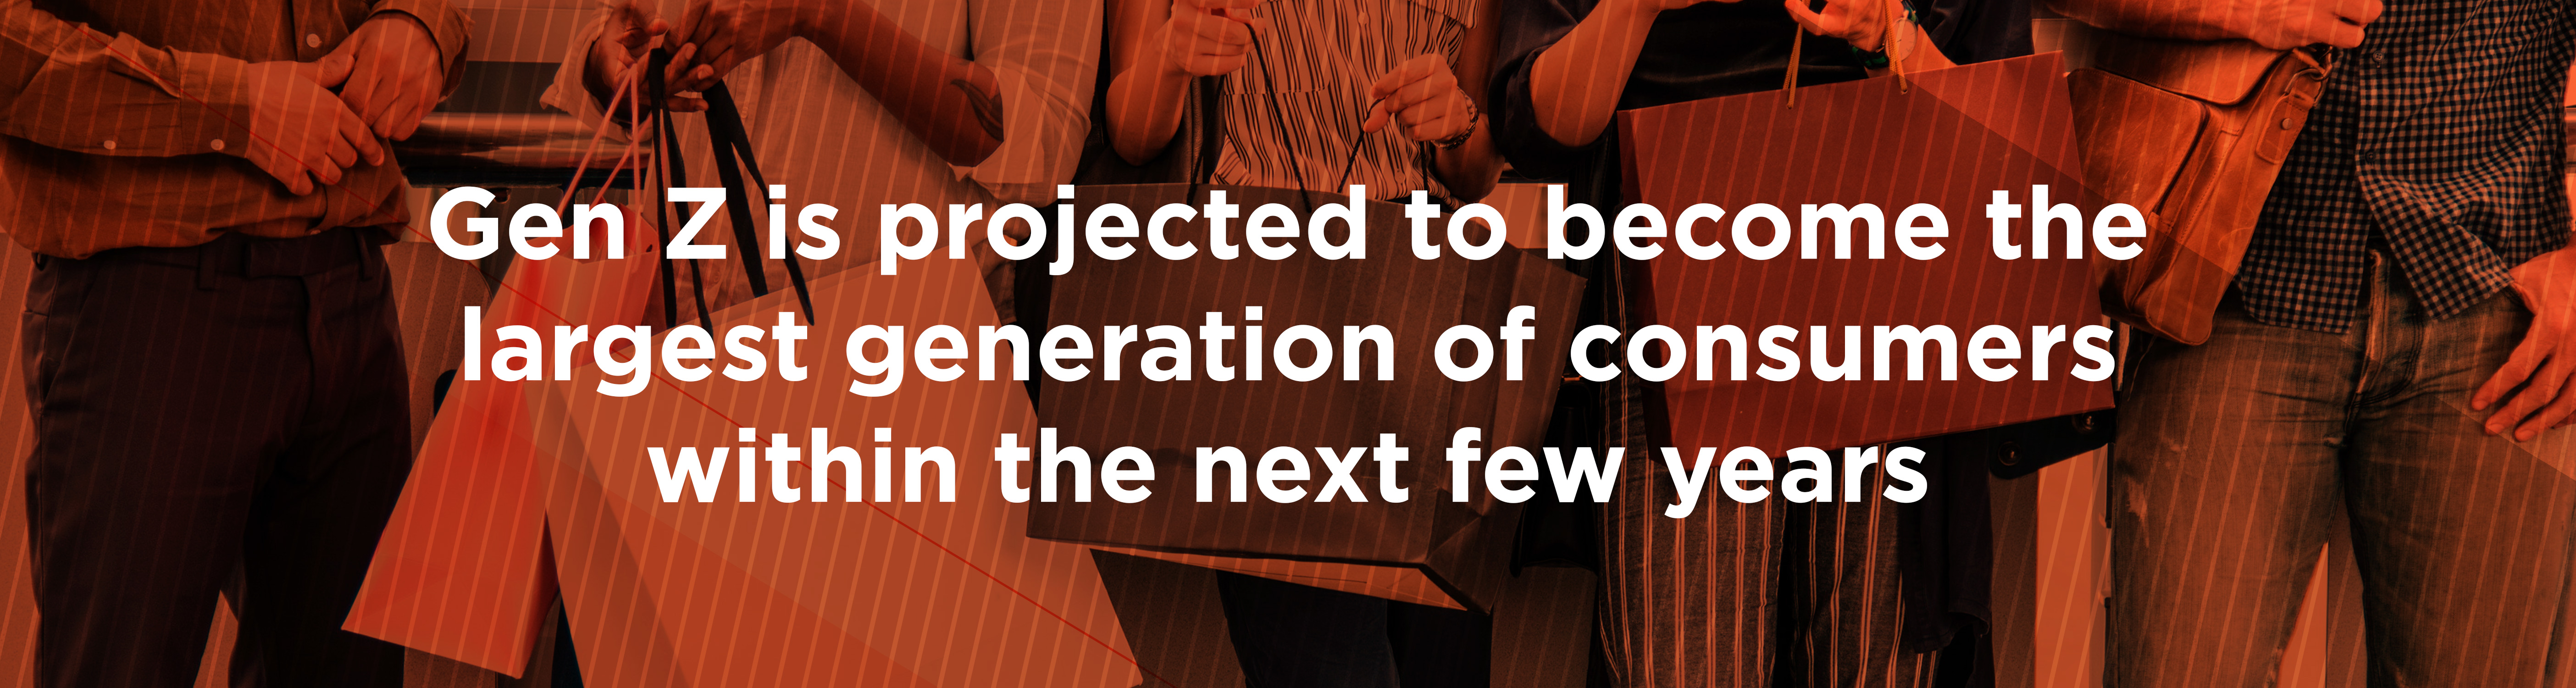 o360-Blog_Recognizing-Millennials,-Gen-Z-By-How-They-Write-Online-Comments_Internal2